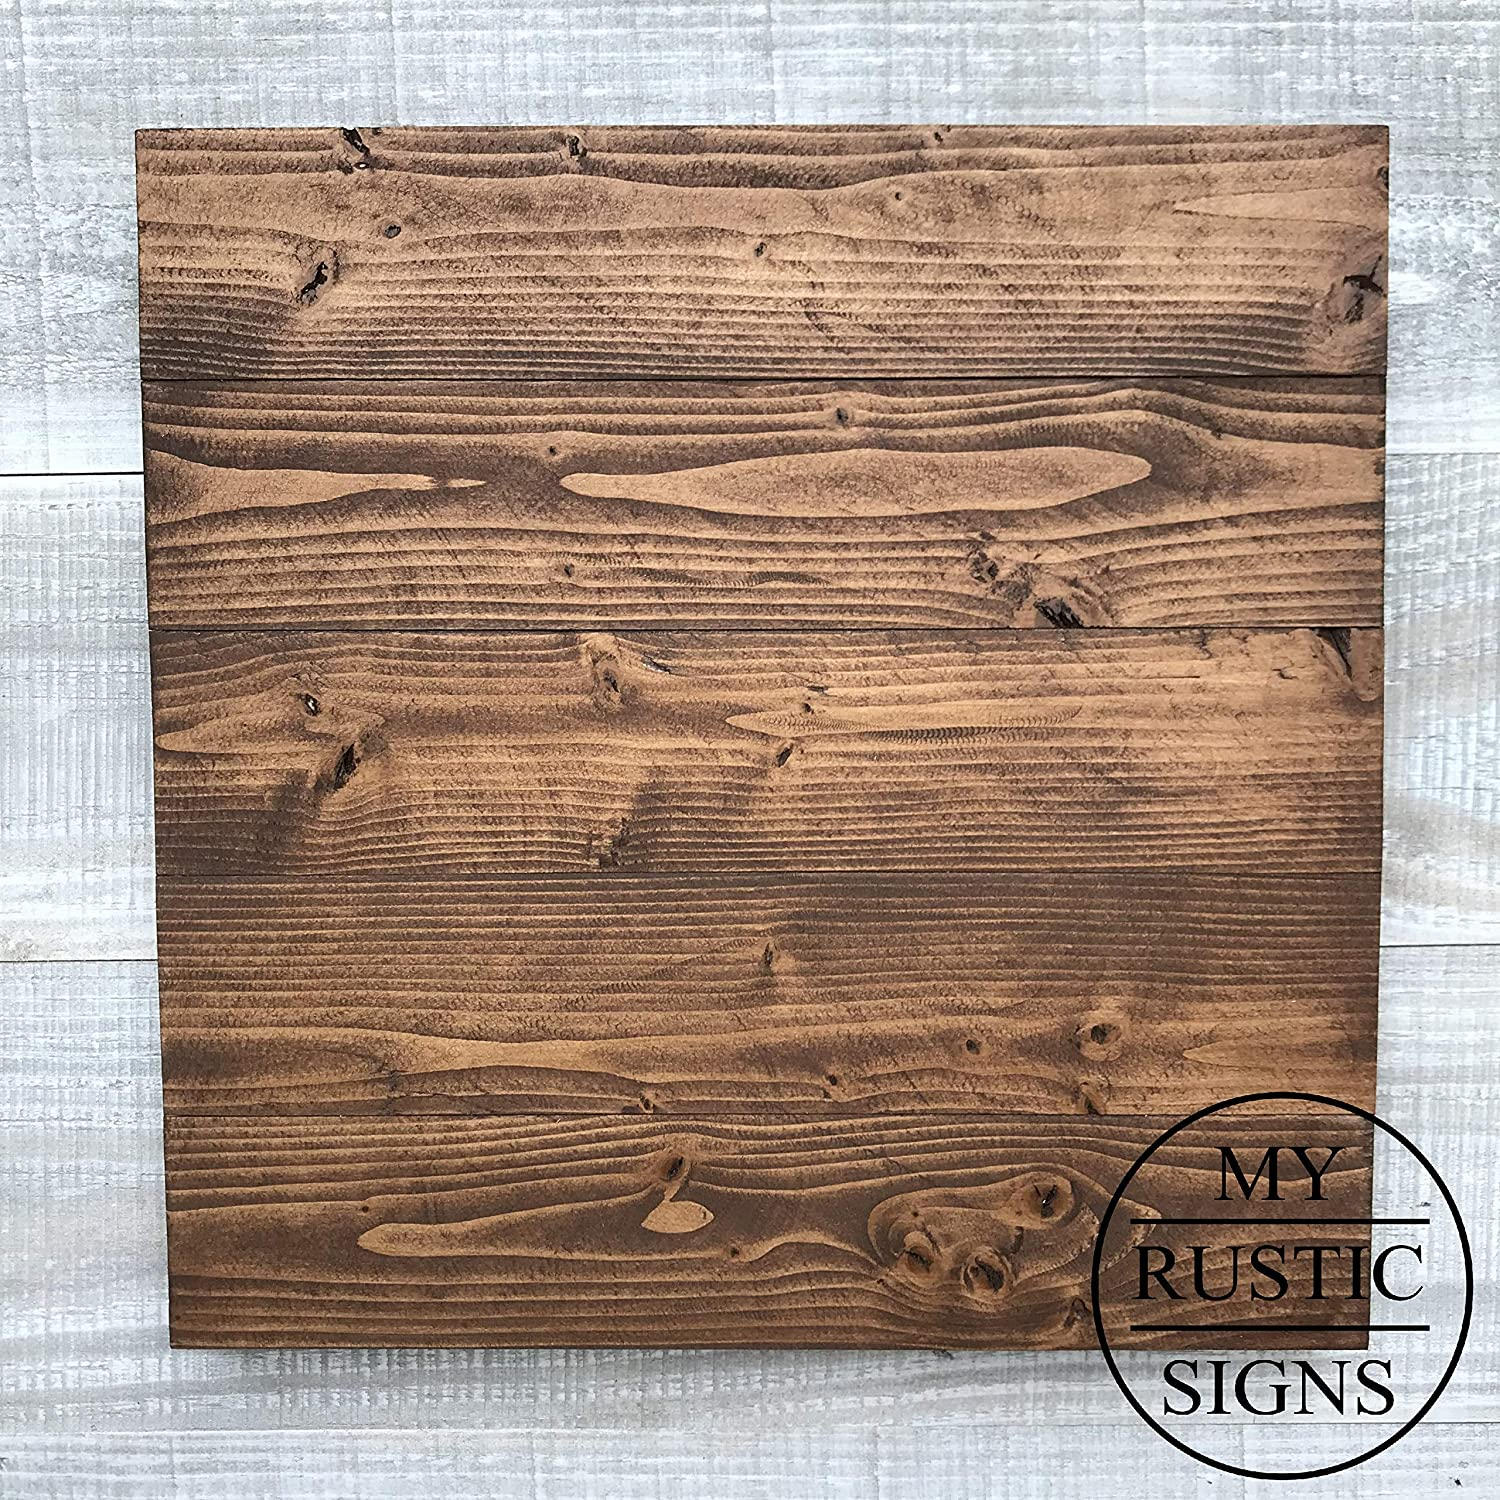 Rustic Wood Sign Blank in Dark Walnut | 12"|1500|1500|?|be5d038d2be858a3abd2afa2e02a64d9|False|UNLIKELY|0.3317427337169647